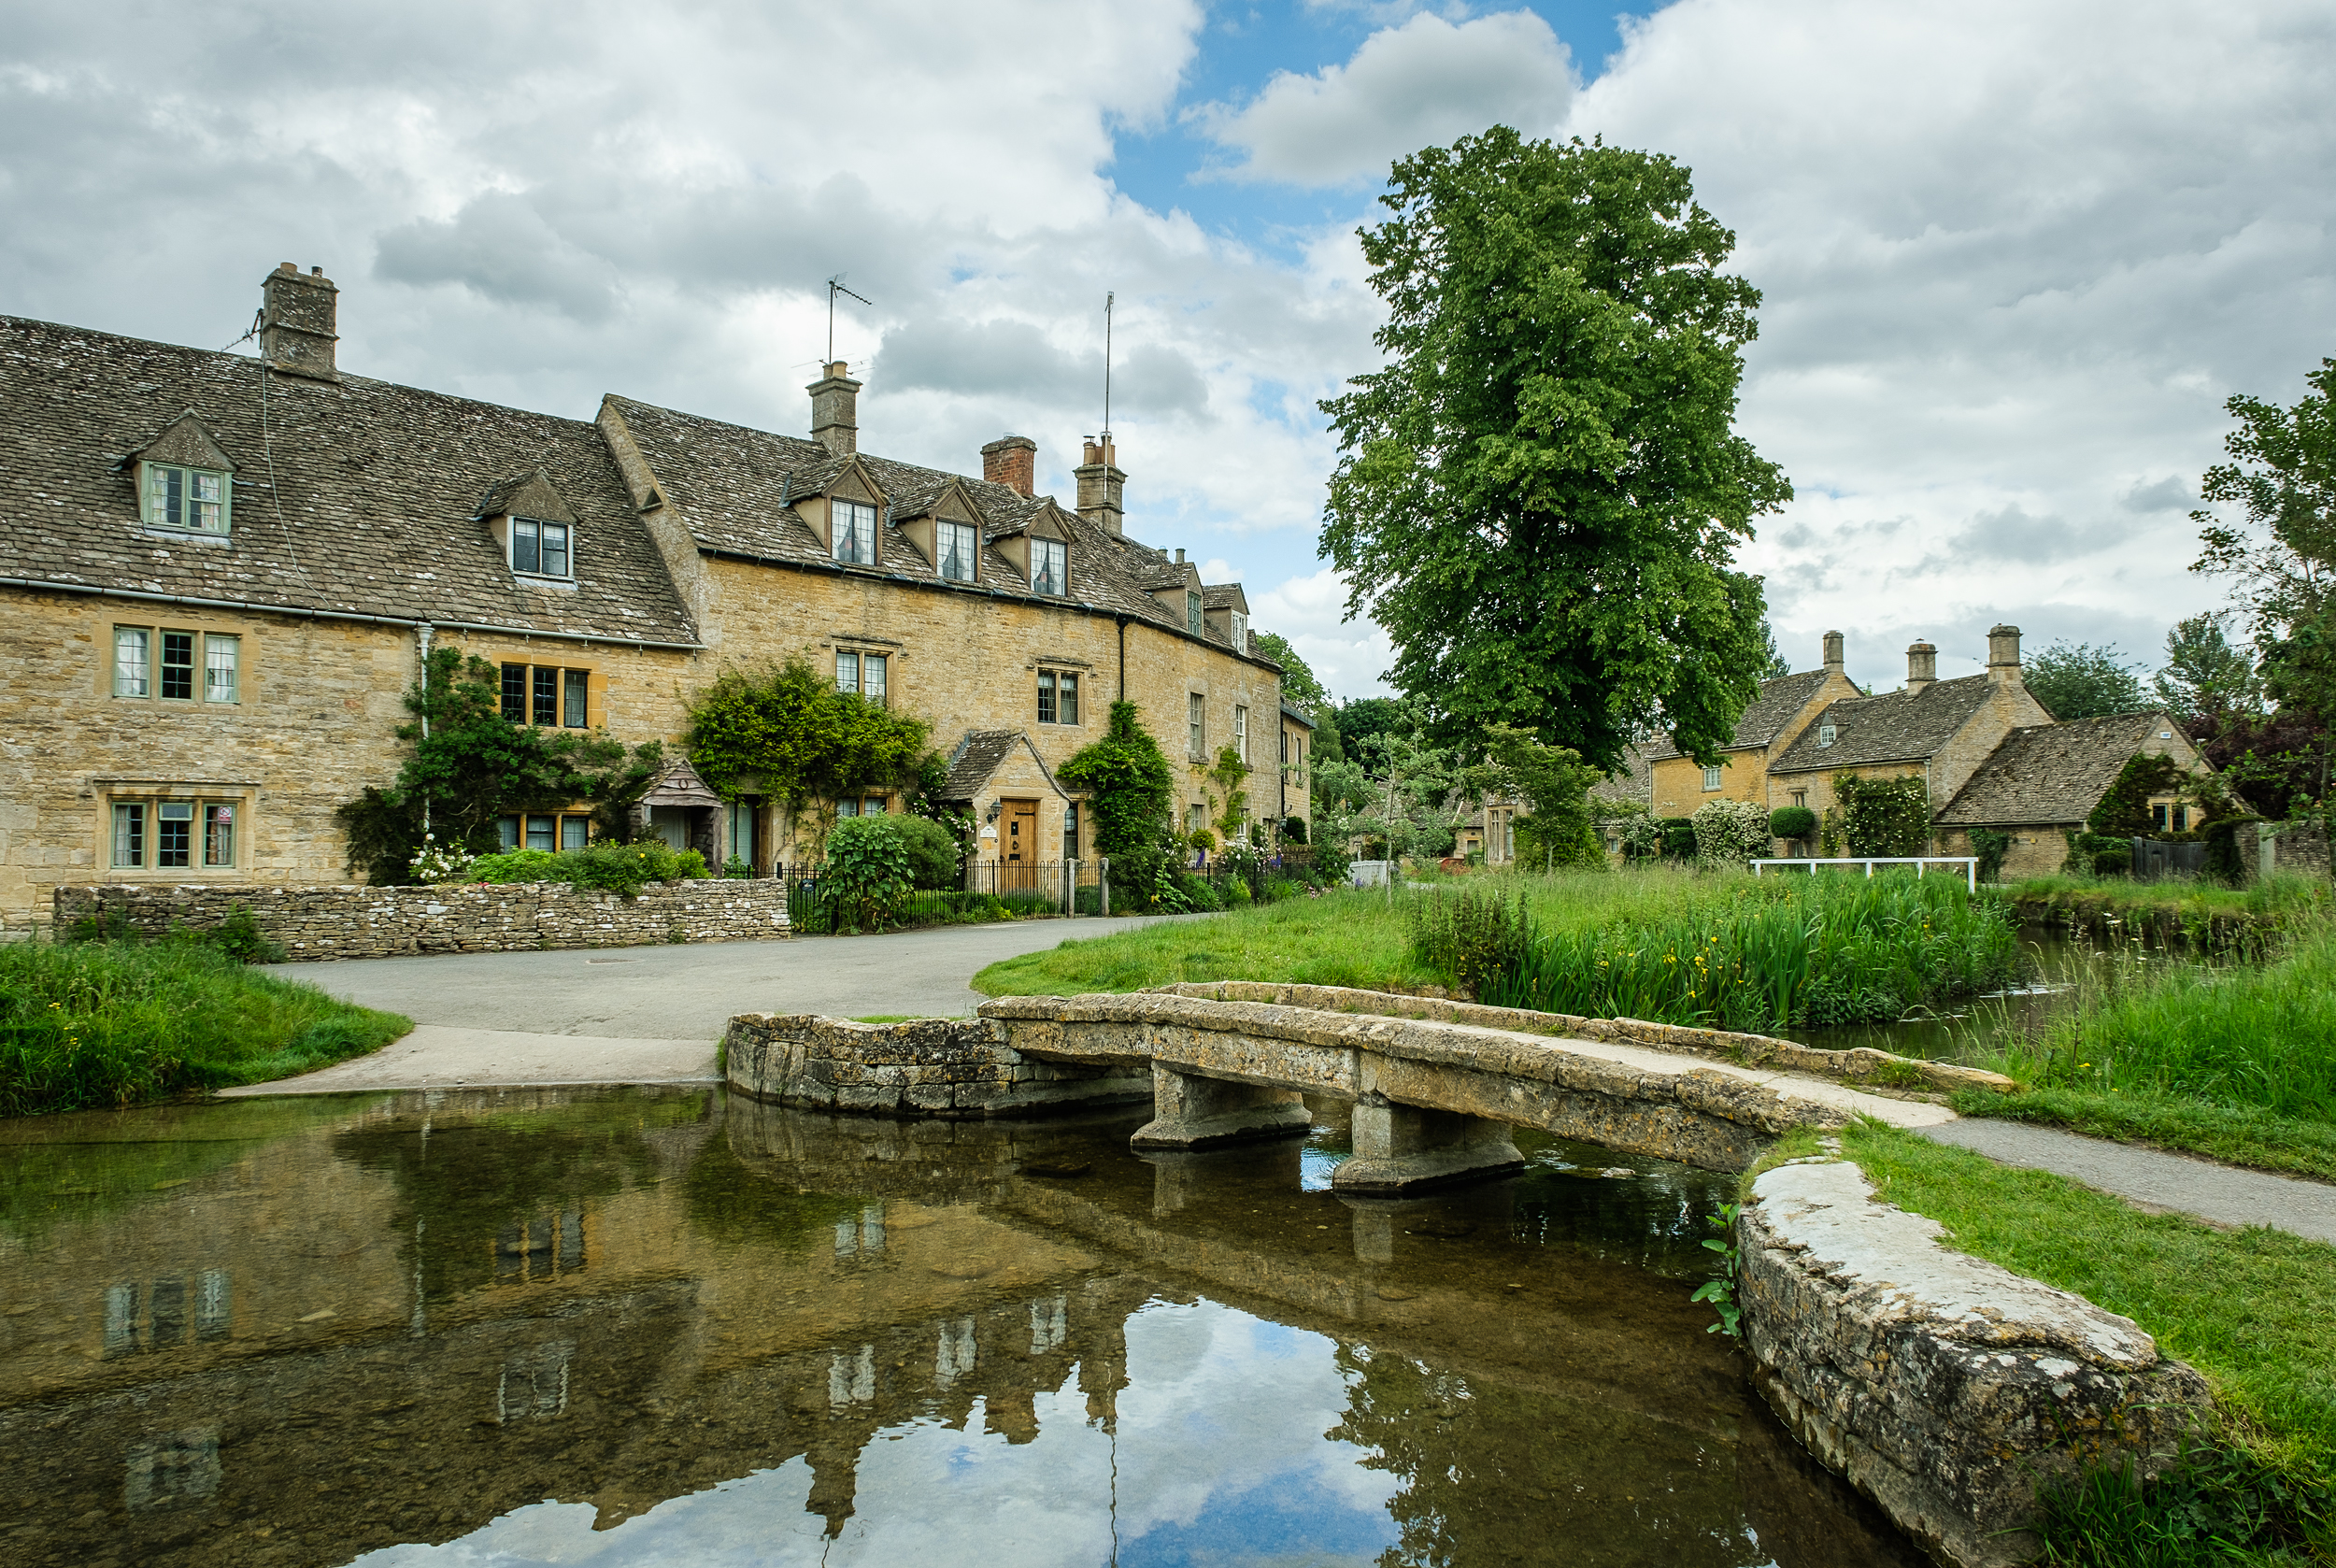 20190619_cotswolds-682-Edit.jpg